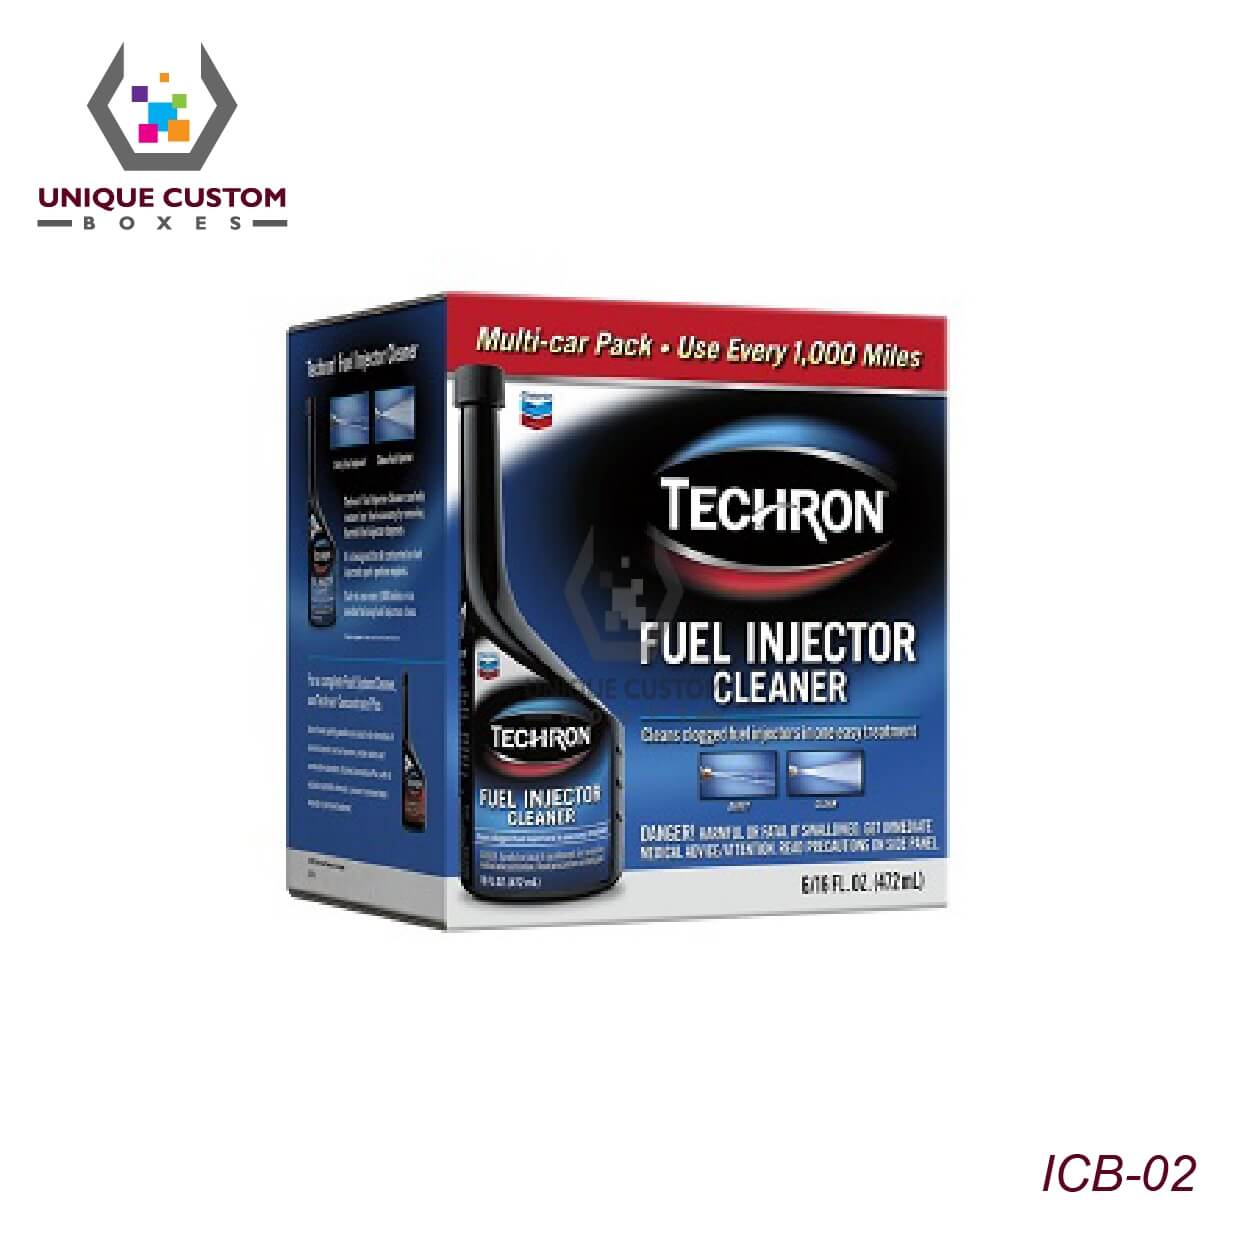 Injector Cleaner Boxes and Labels-2